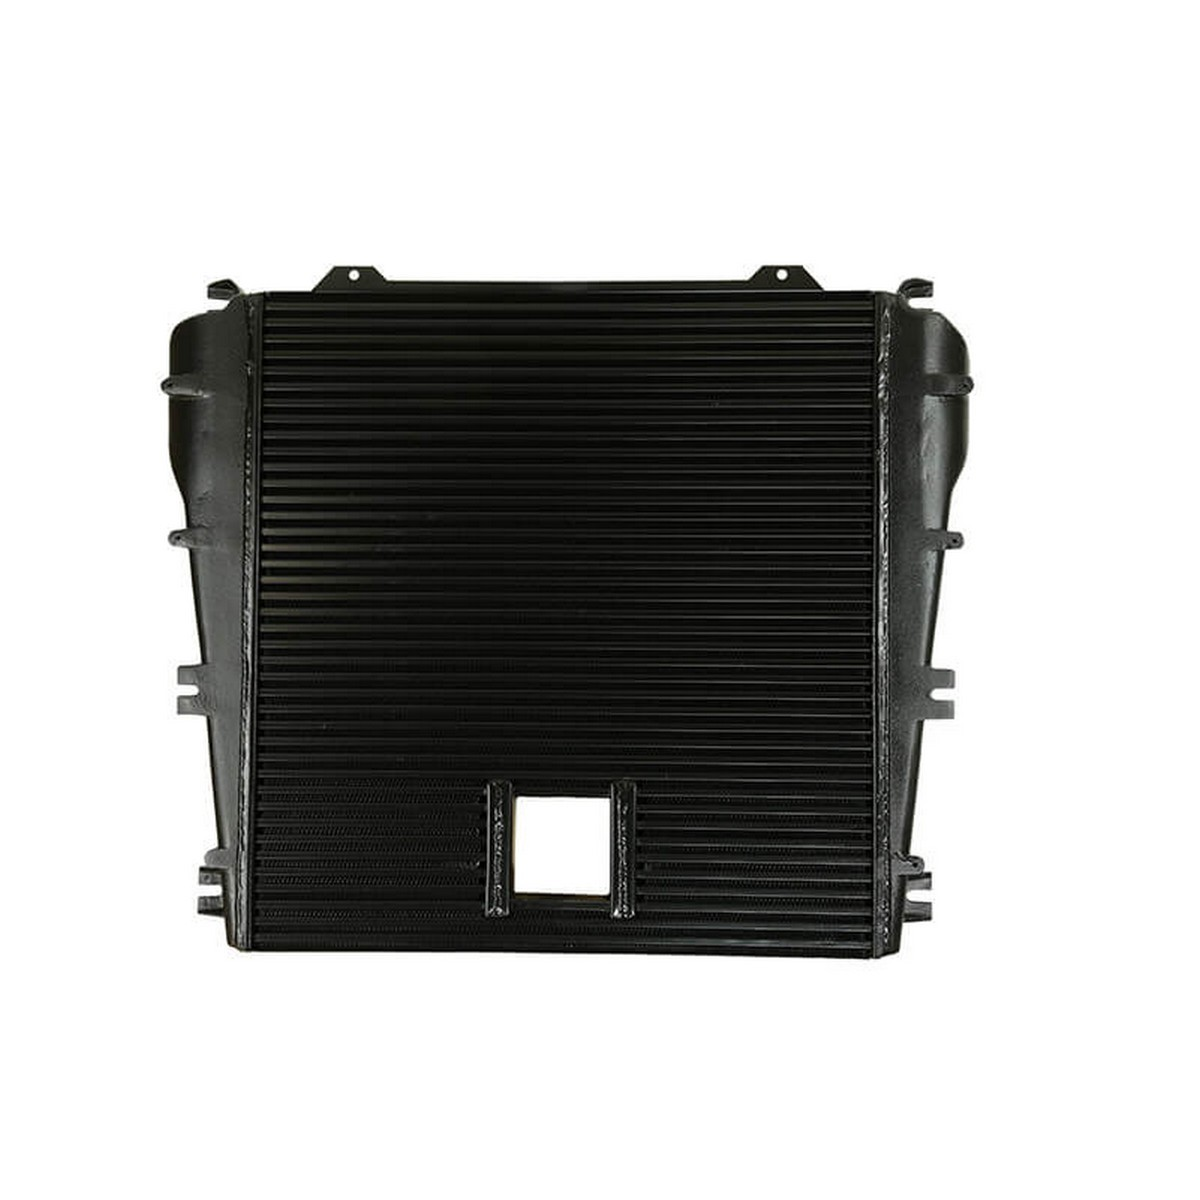 freightliner fits mt45 mt55 oem 01 23330 003 must verify if needs pto charge air cooler oem 1sa00232r 3